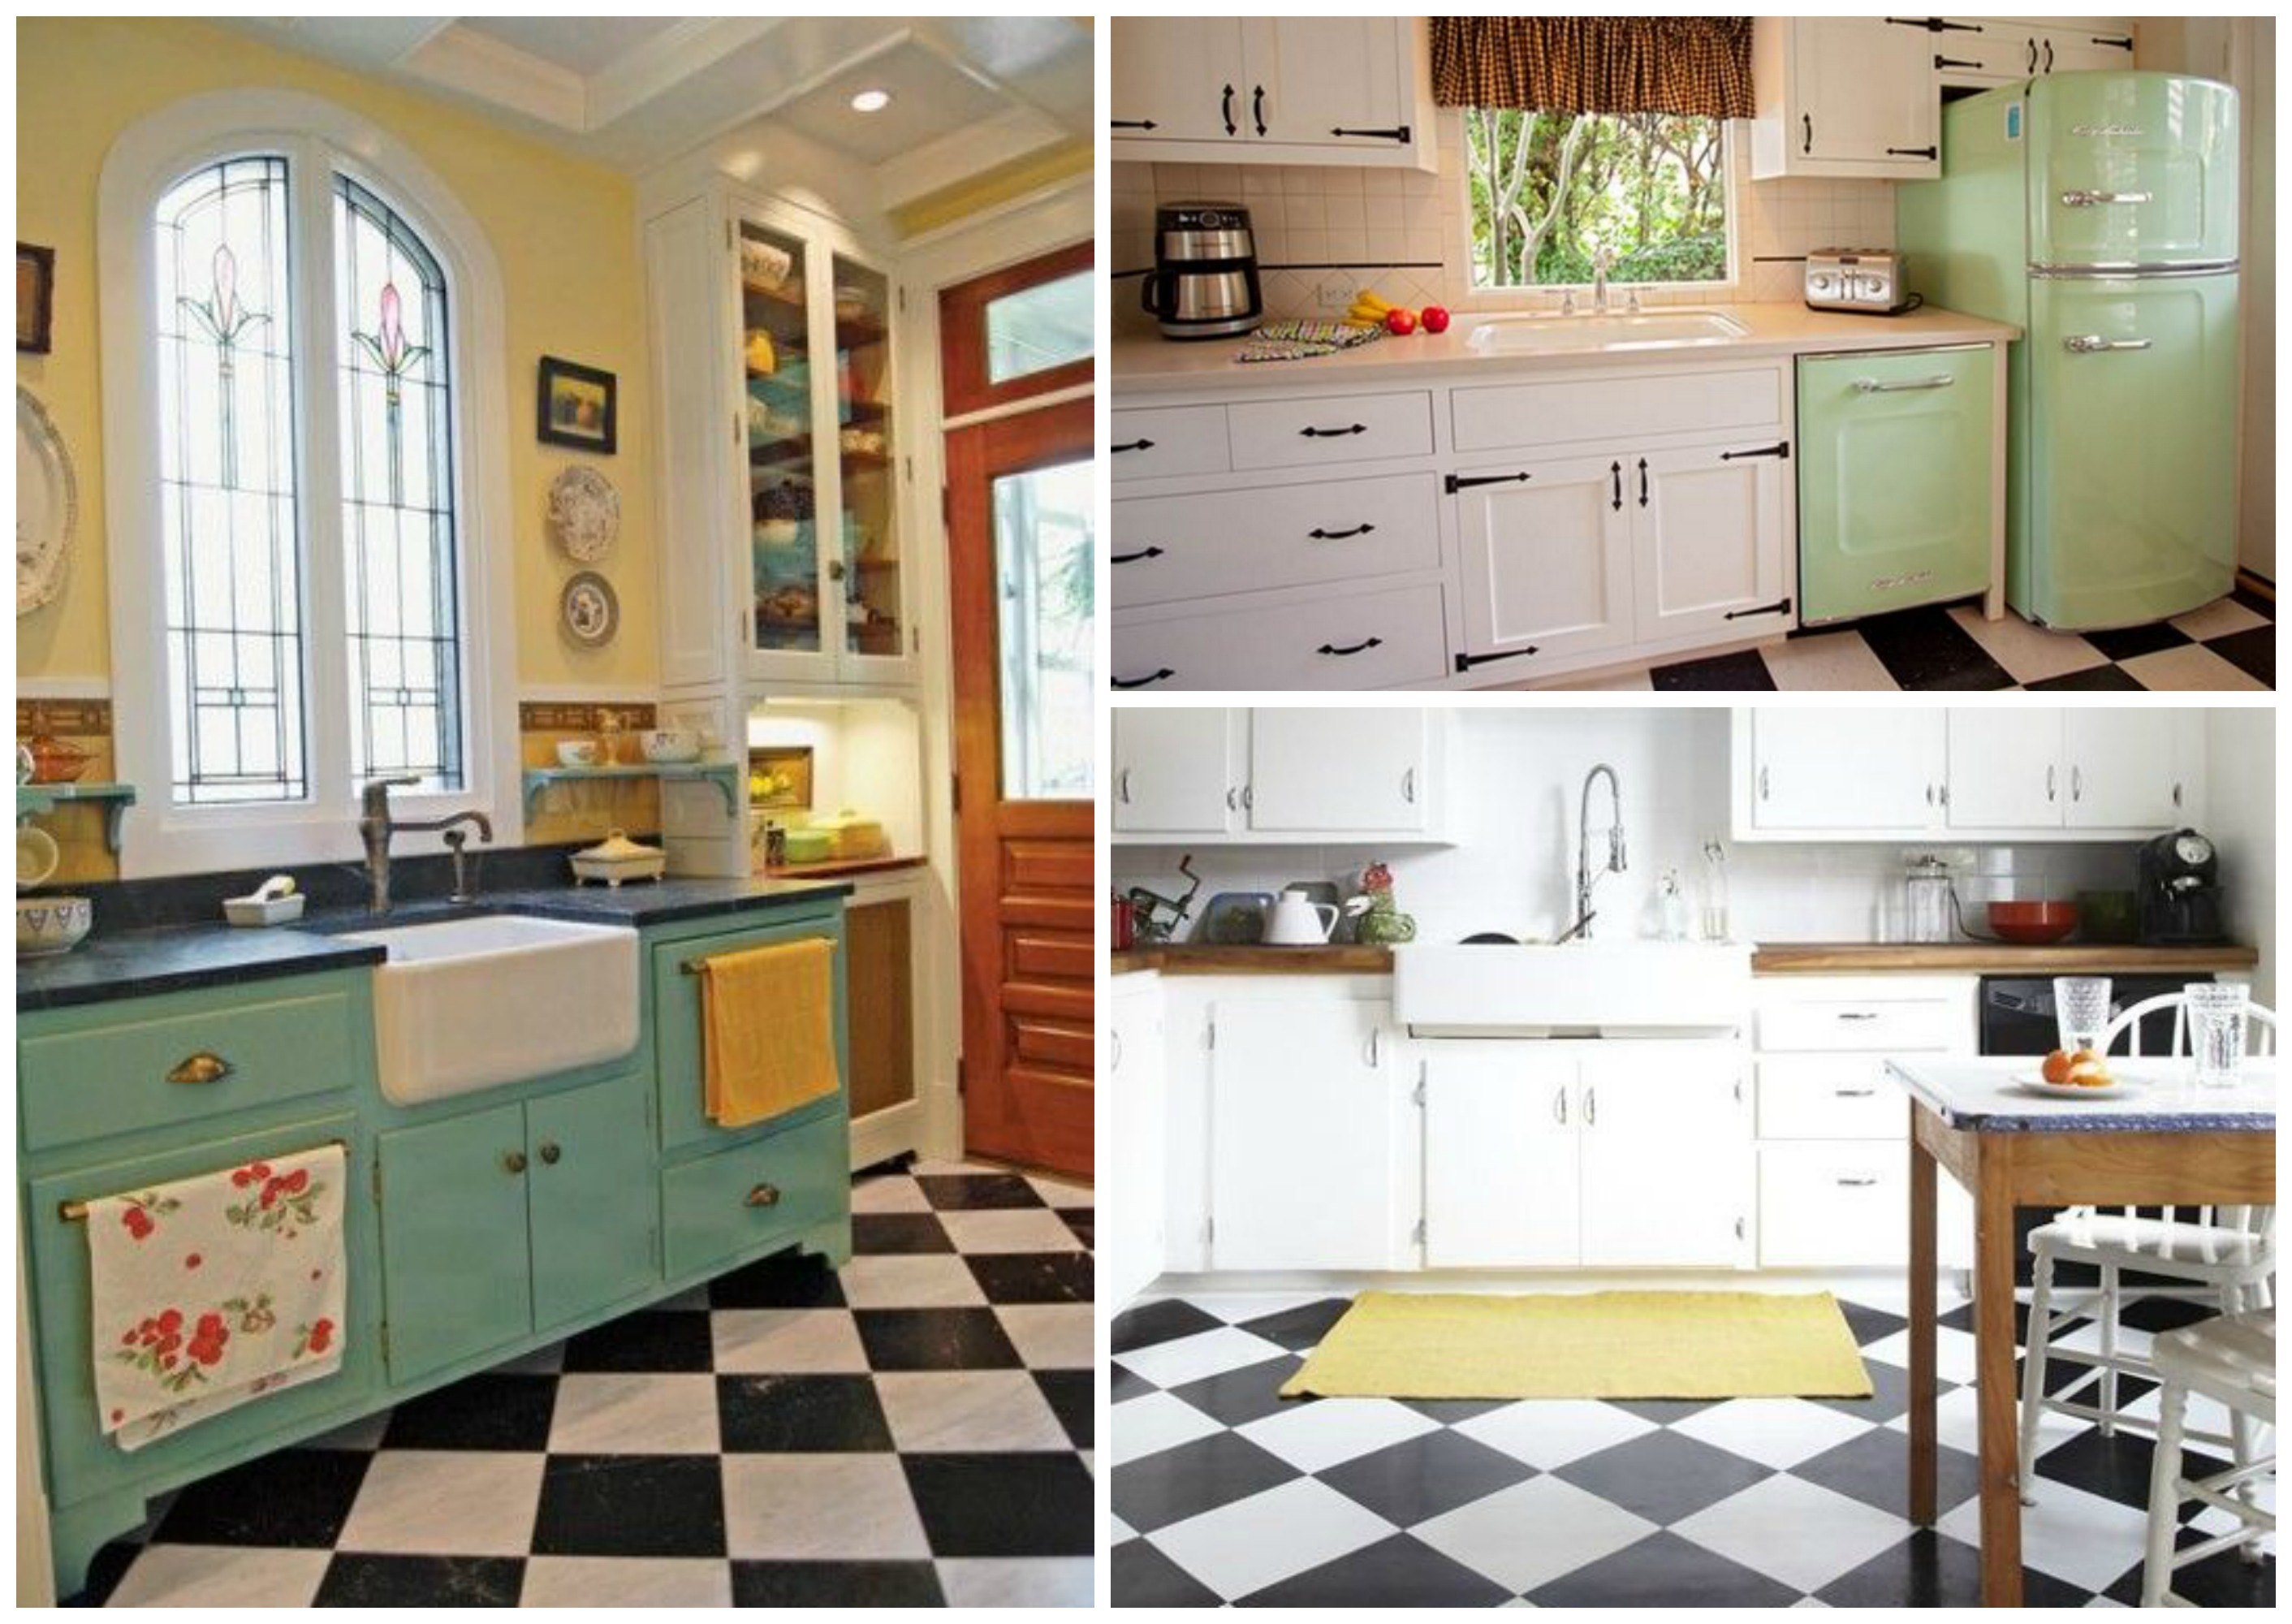 If creating a true retro kitchen, a checkered tile floor is an absolute  must. A classic and timeless option would be to stick with a black and  white color